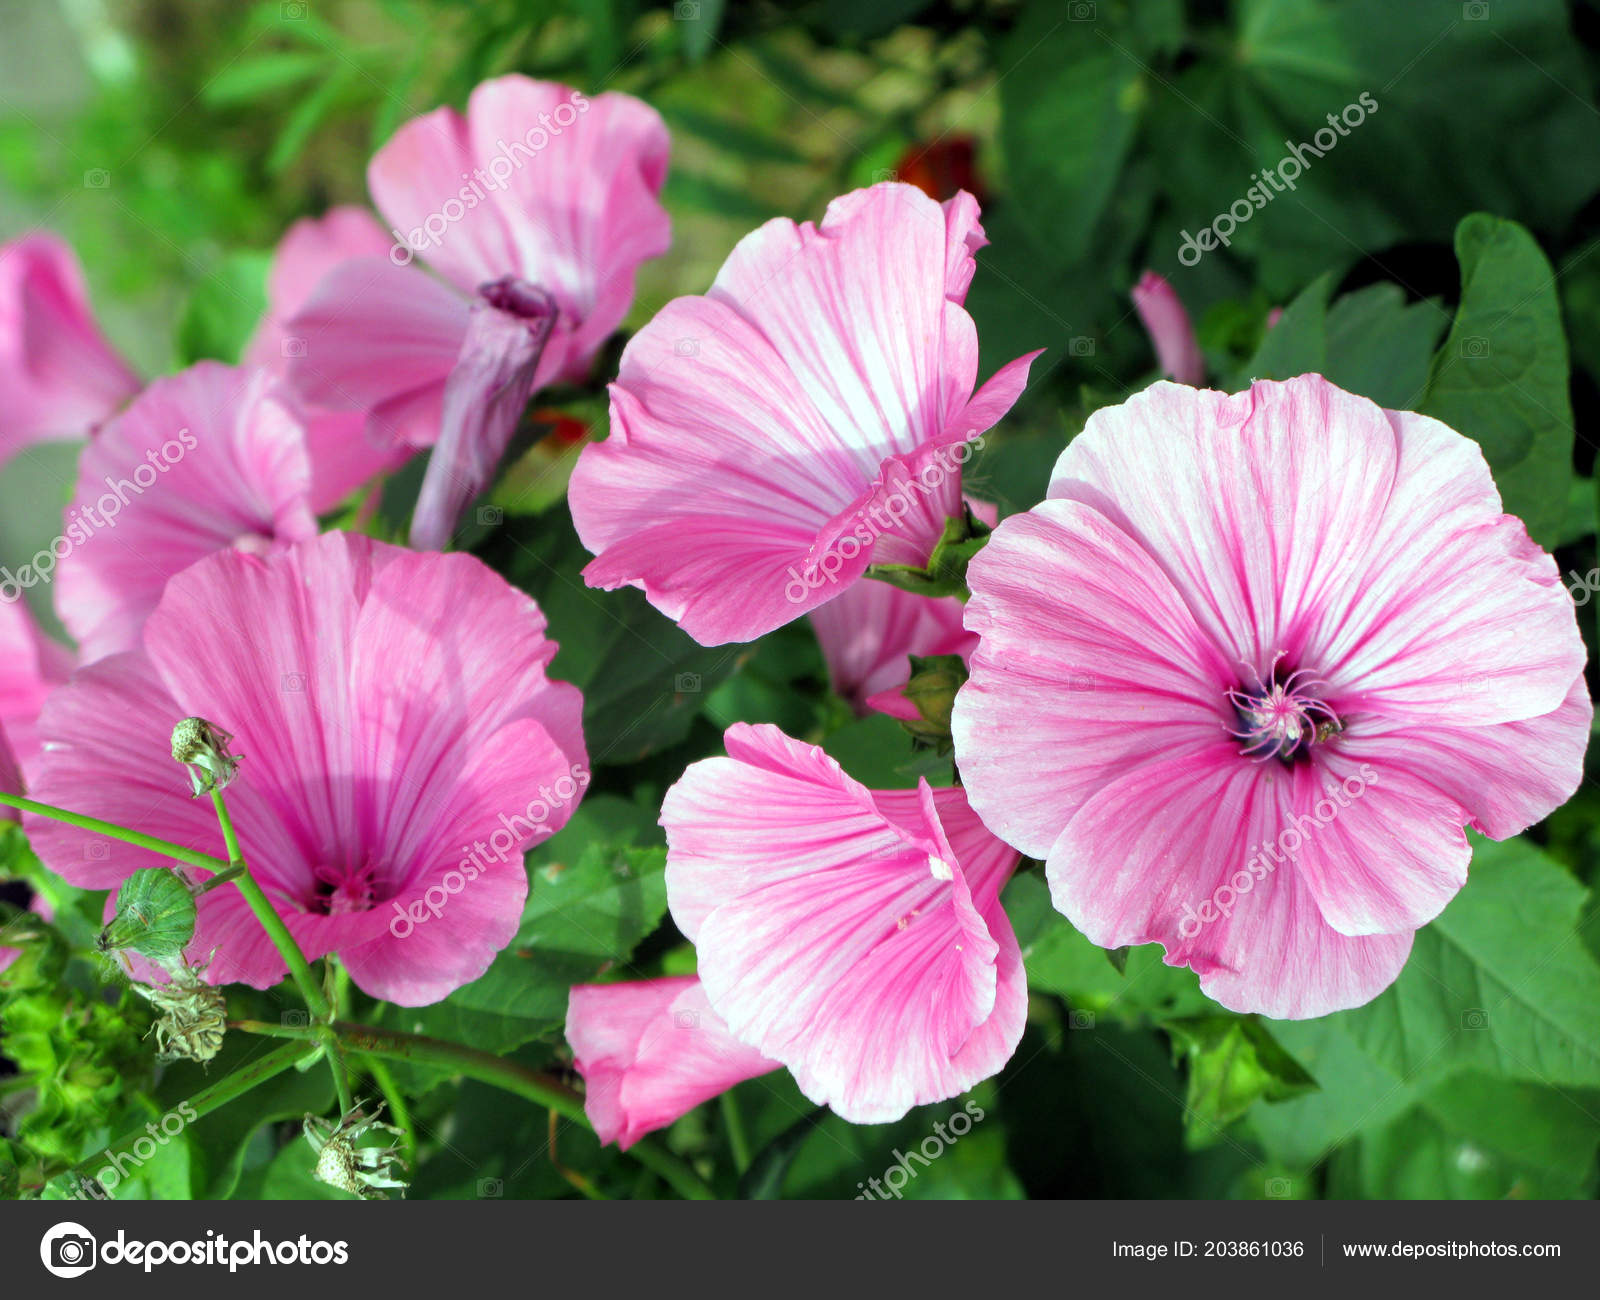 Delicate Striped White Pink Flowers In Focus On The Background Of